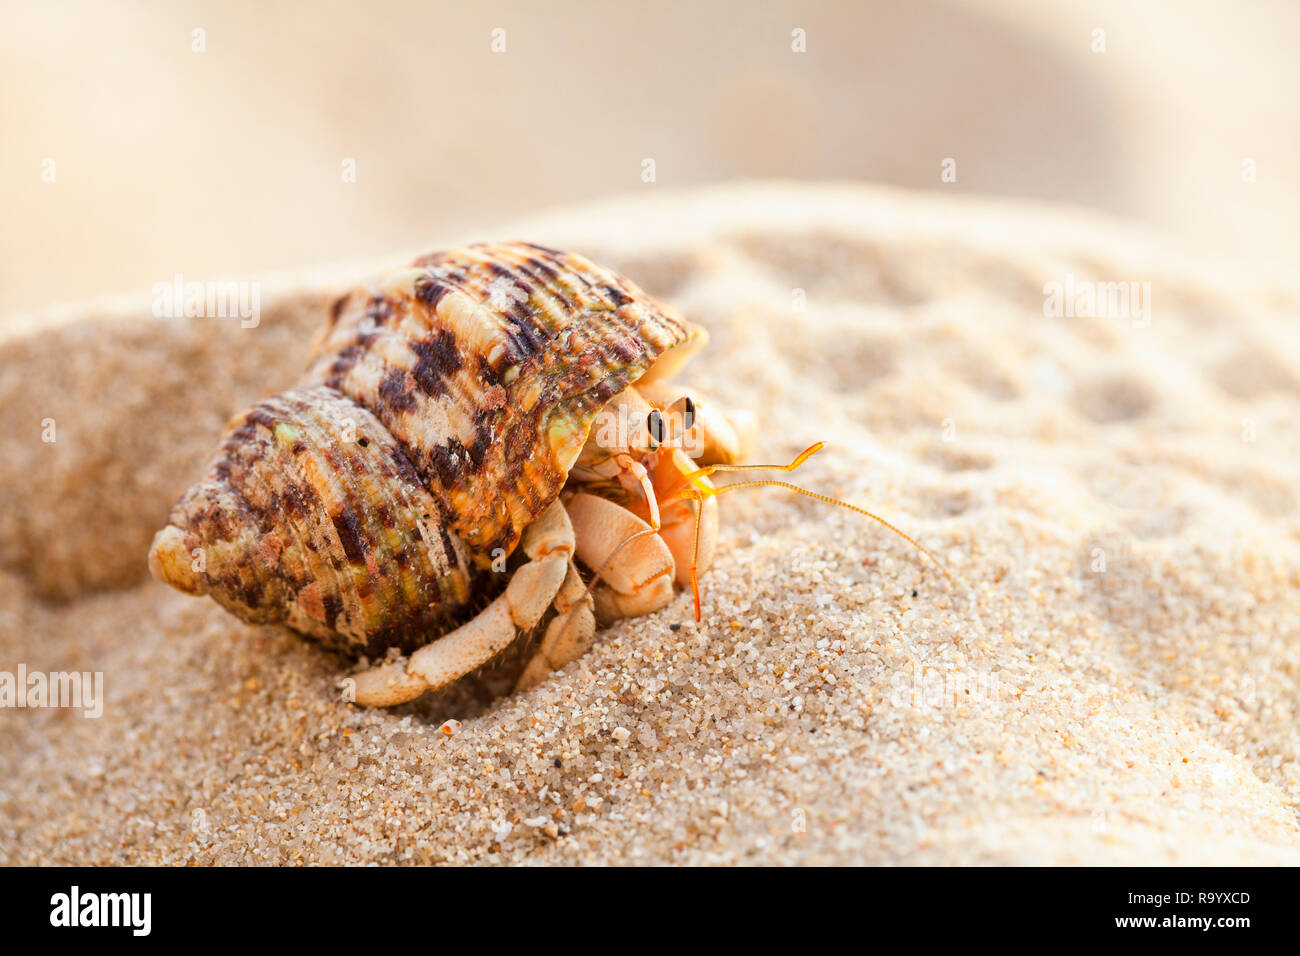 Hermit crab get out from shell to explores the environment in local Seychelle beach - Stock Image